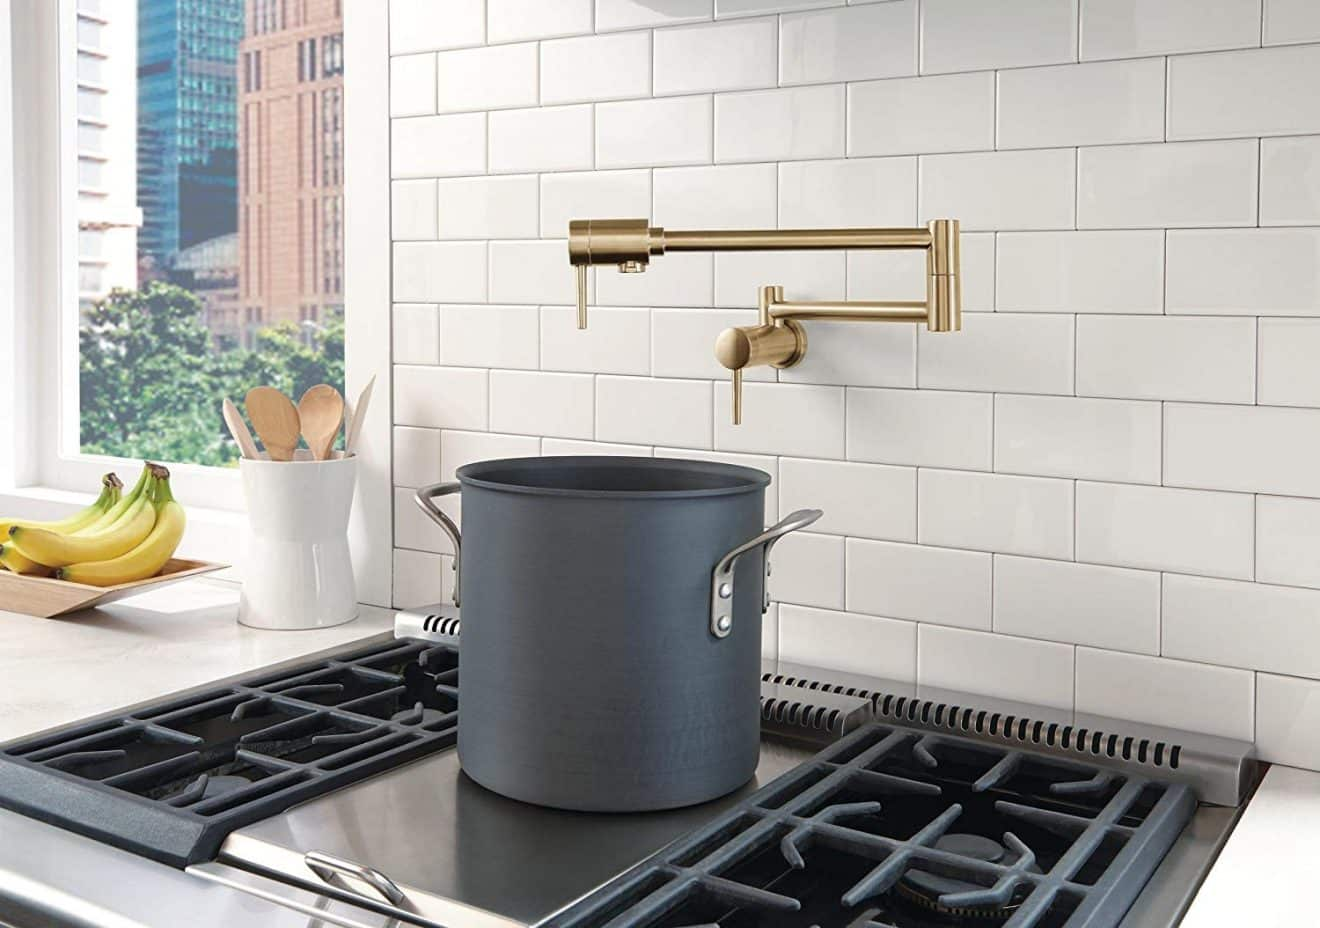 Wall Mount Kitchen Faucet